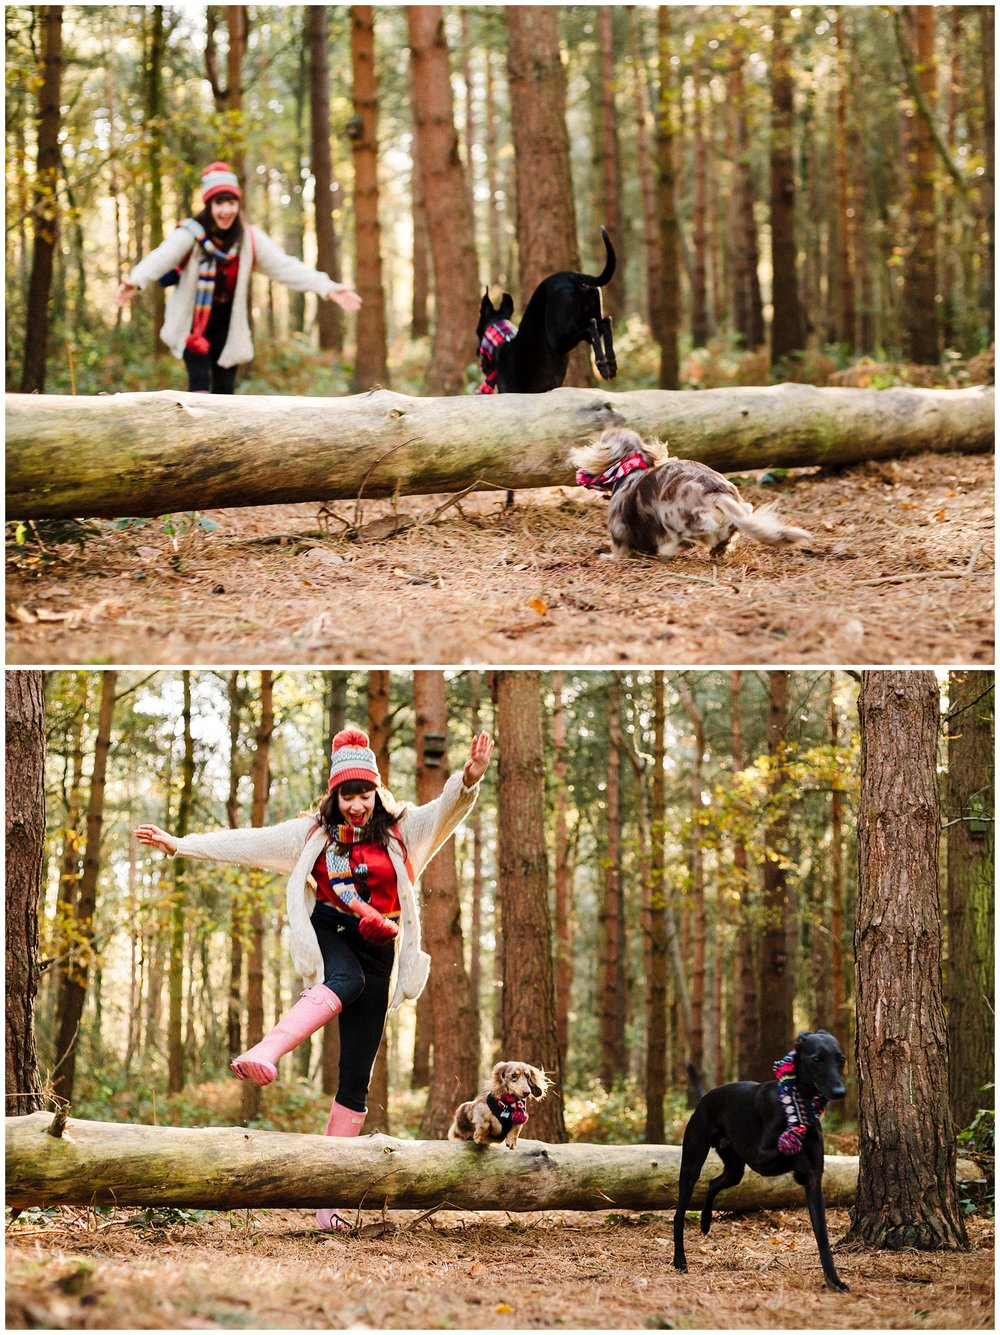 A woman jumping over a log in the woods with her two dogs